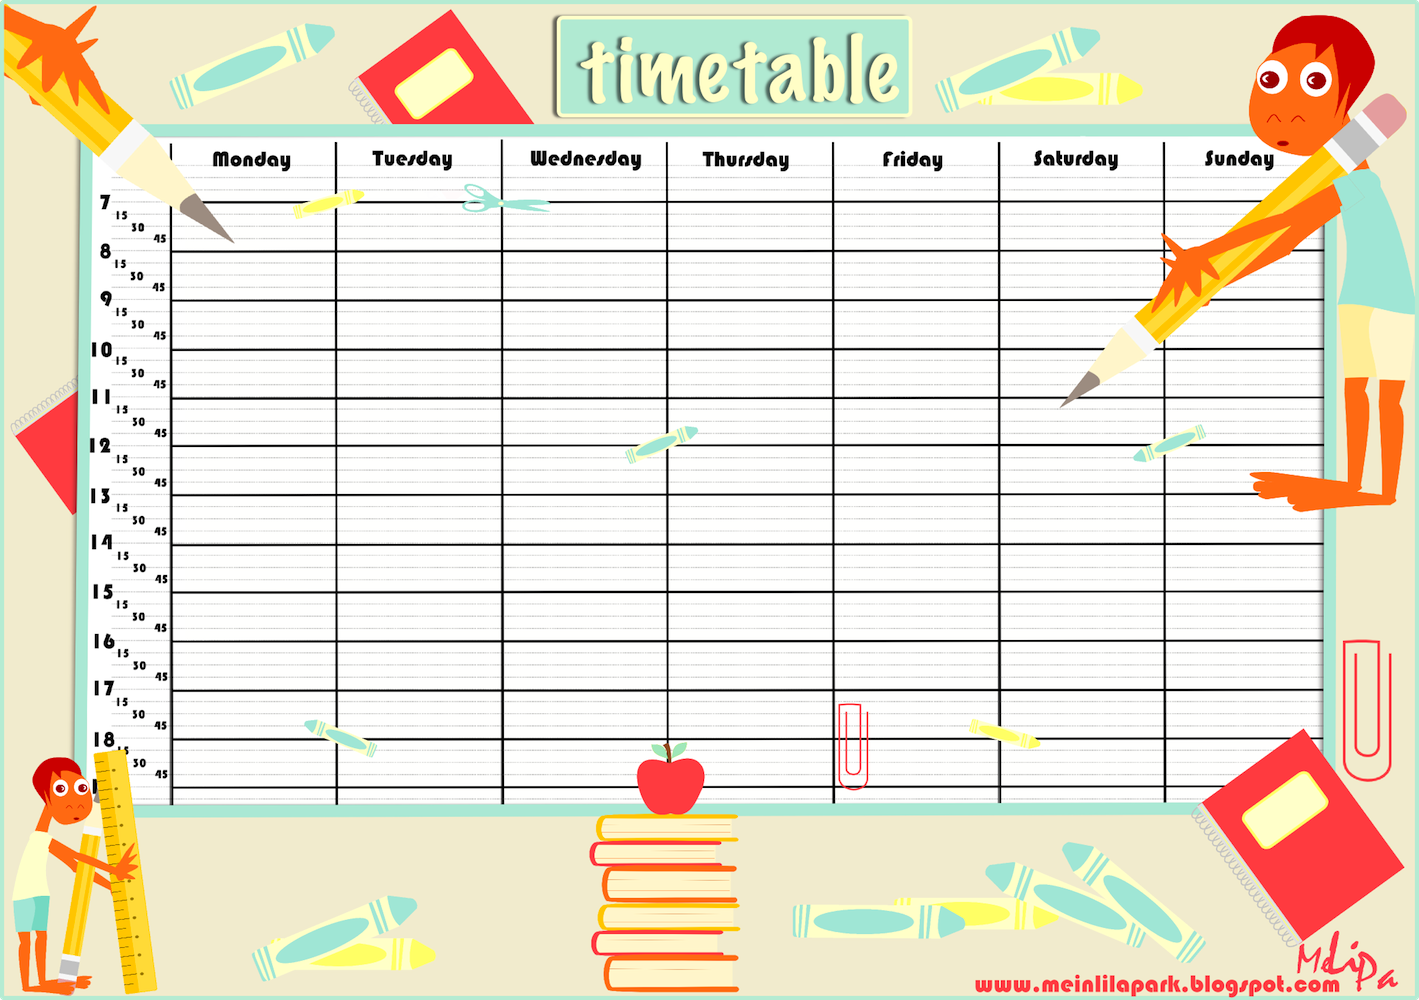 Online Calendar Maker 2012 Free Free Online Schedule Maker Post Your Schedule Online For Free Printable School Timetable And School Scrabpooking